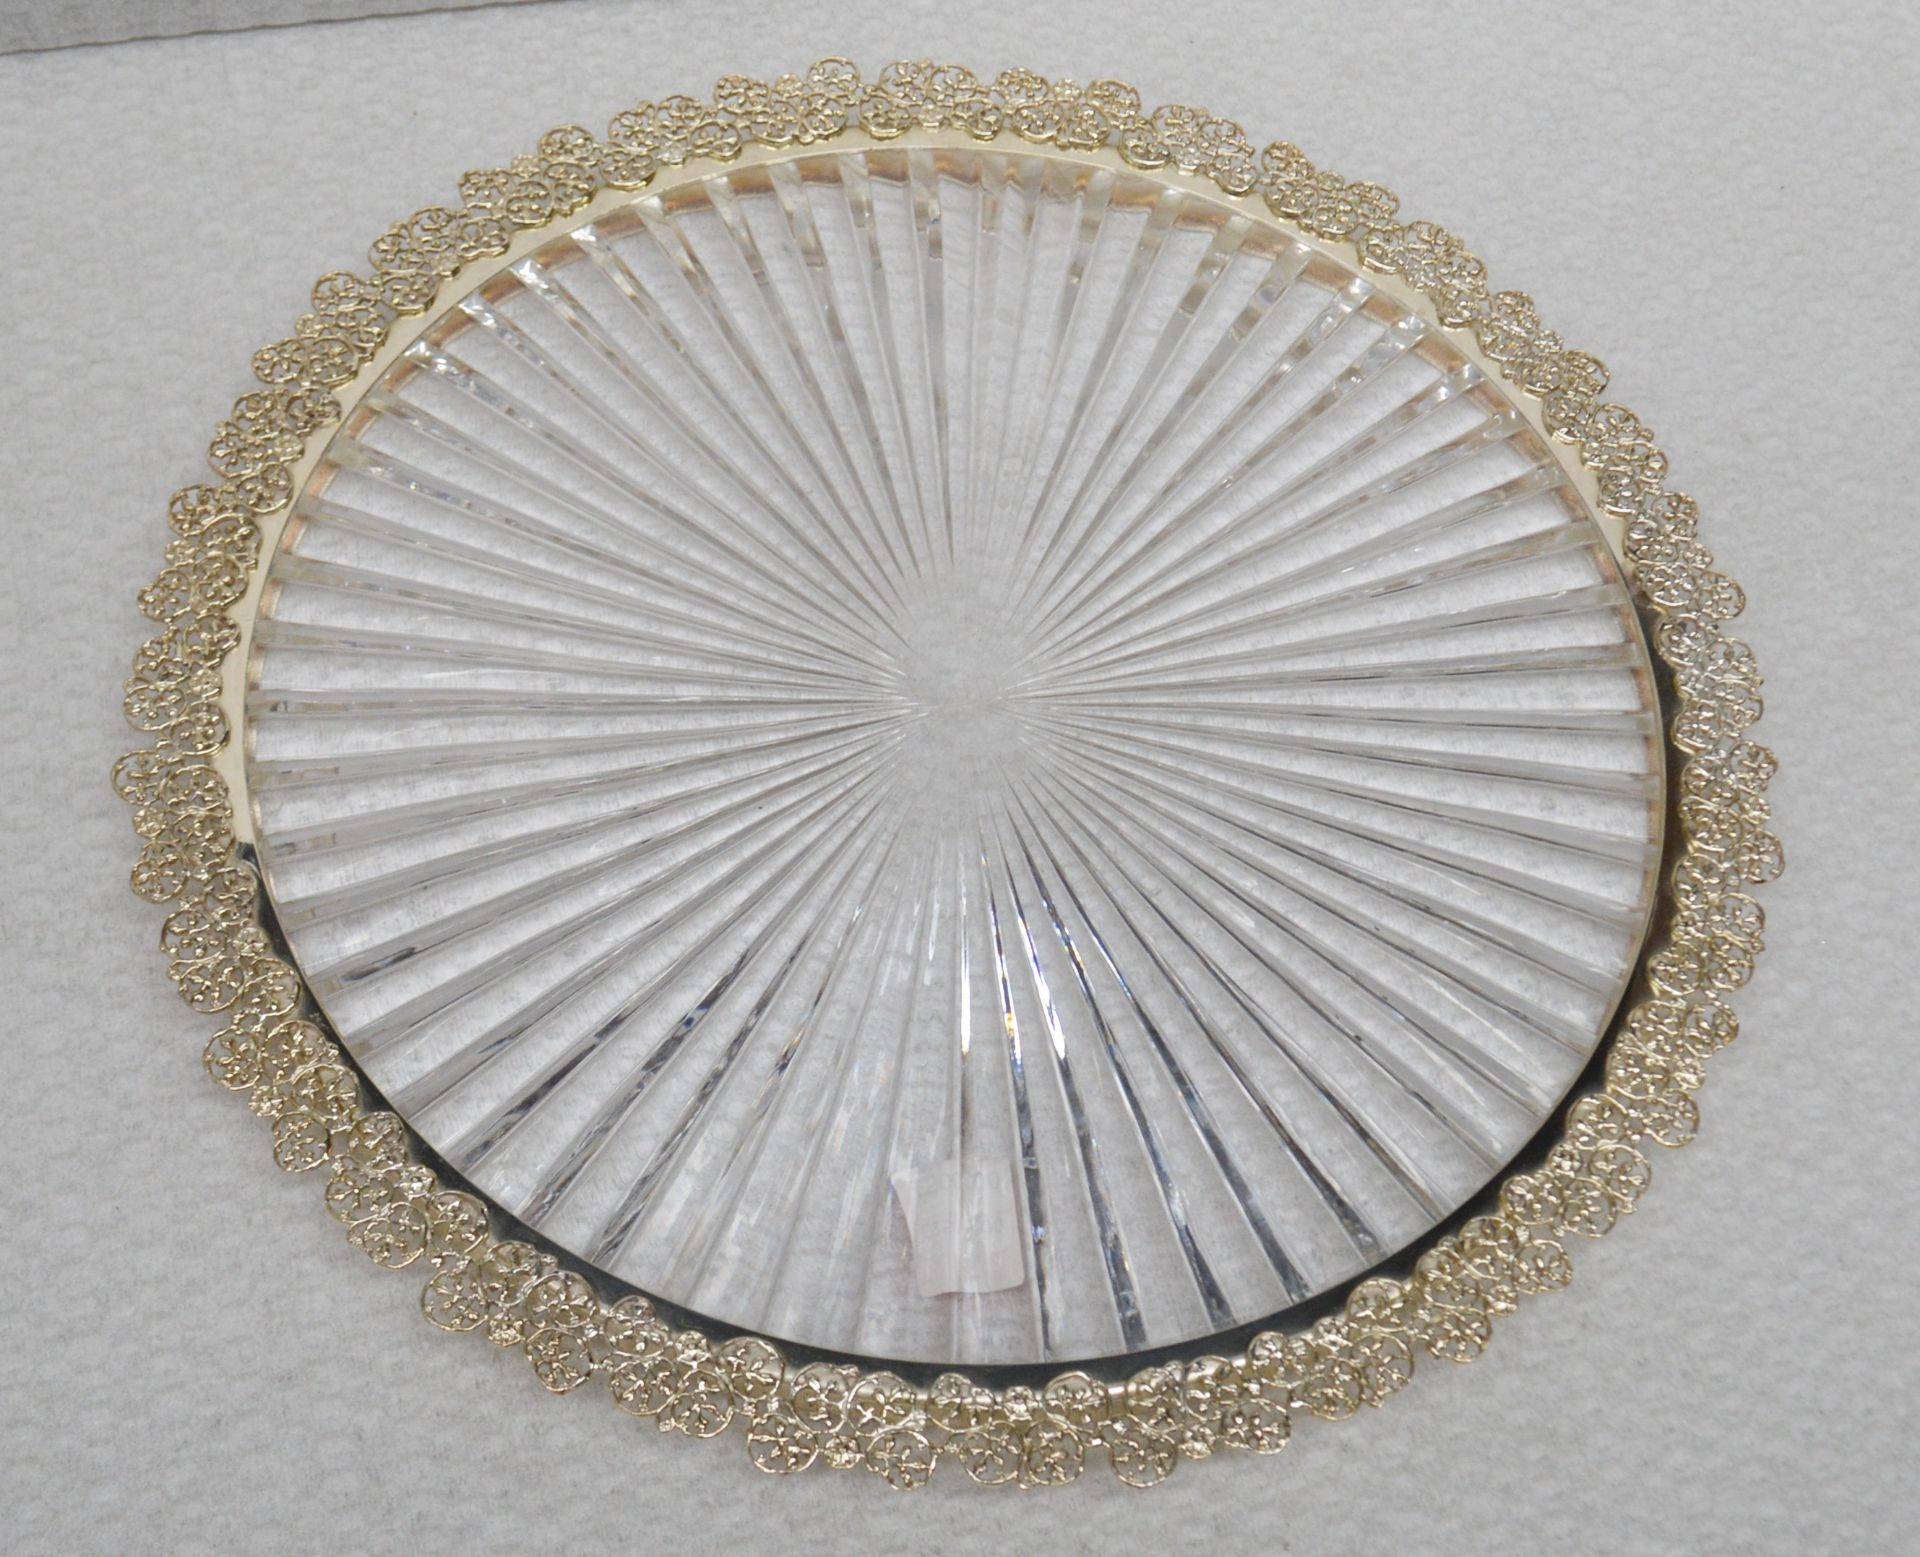 1 x BALDI 'Home Jewels' Italian Hand-crafted Artisan Clear Crystal Platter With Ornate Gold Trim -